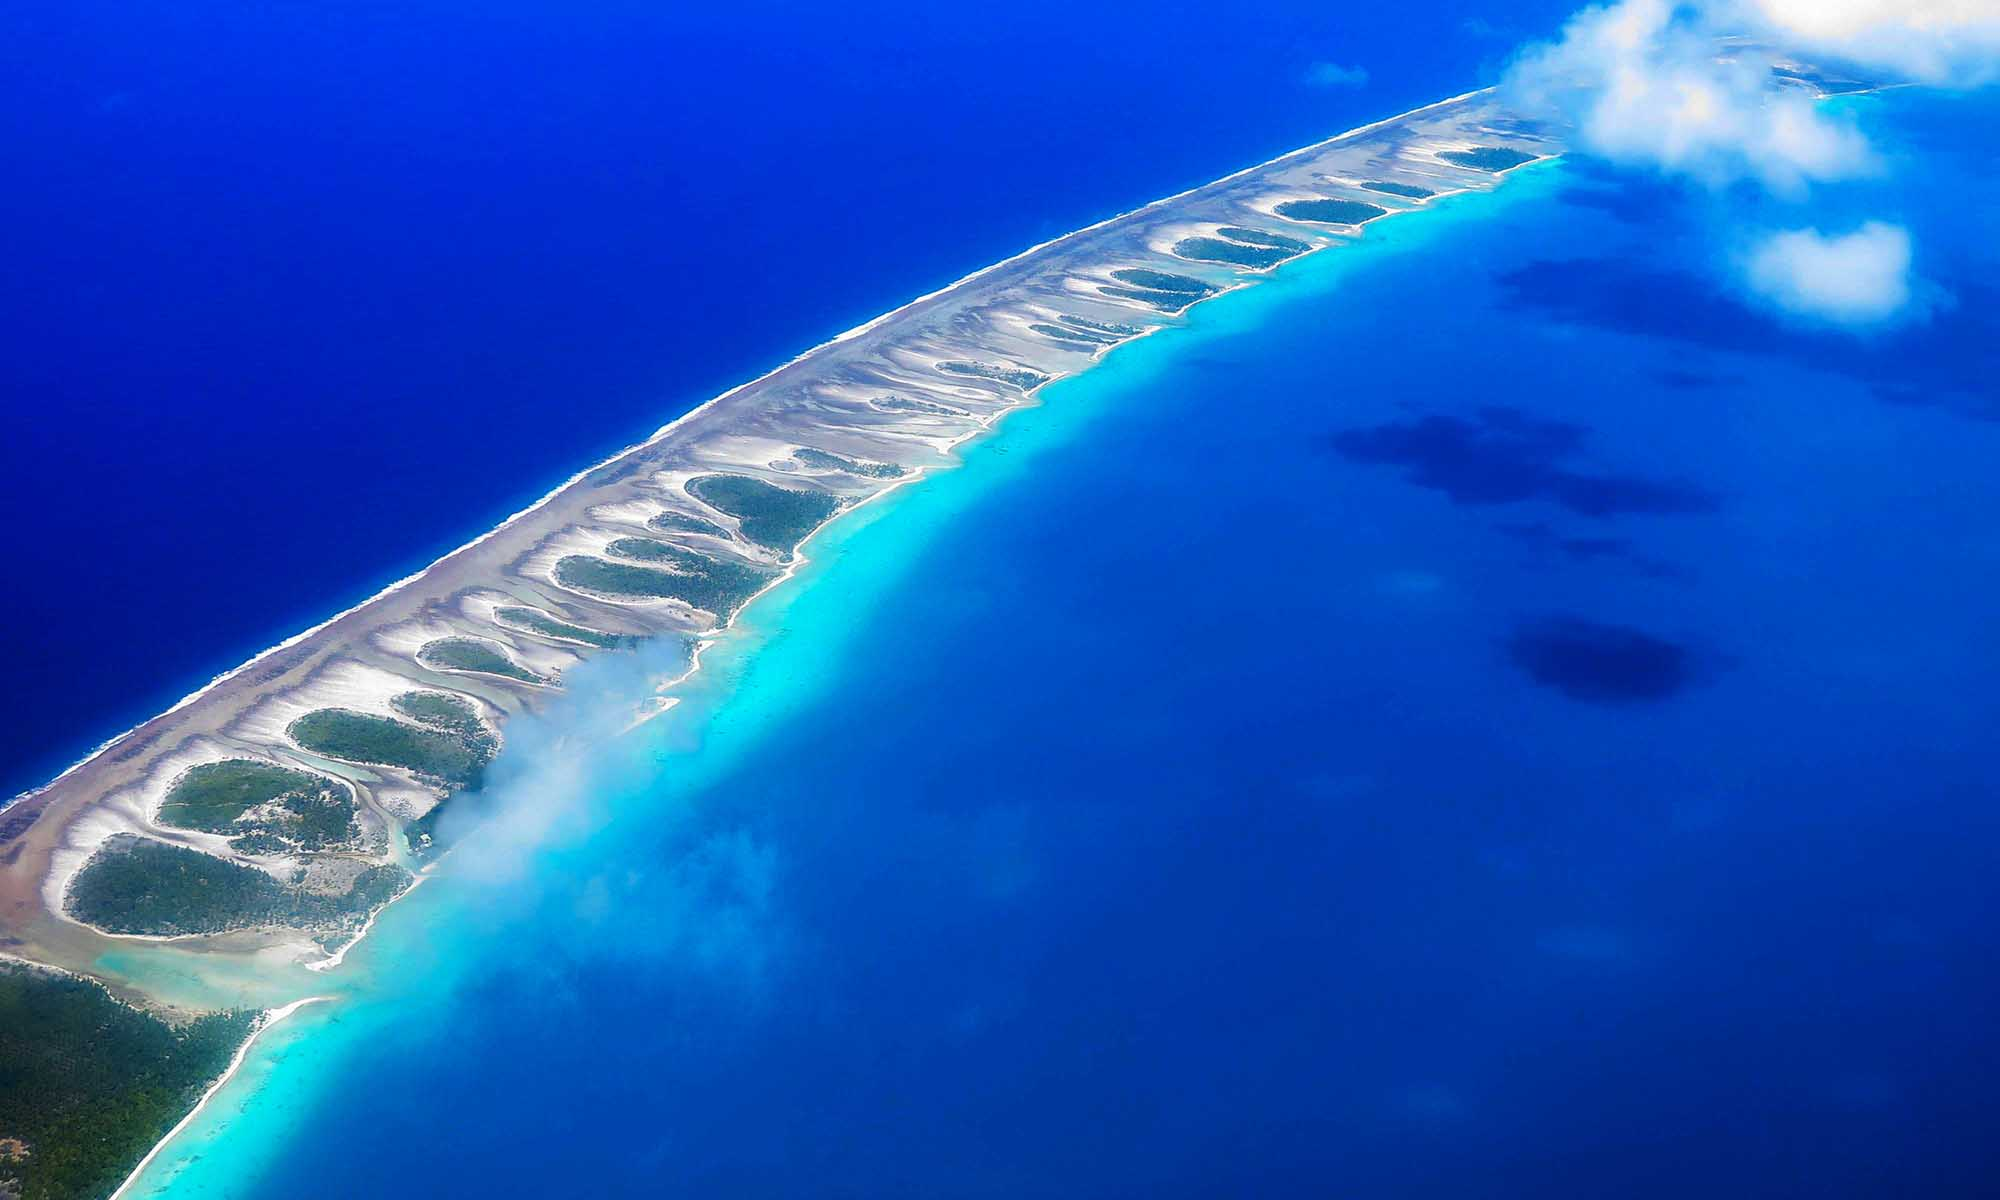 Rangiroa's Atoll from the Sky